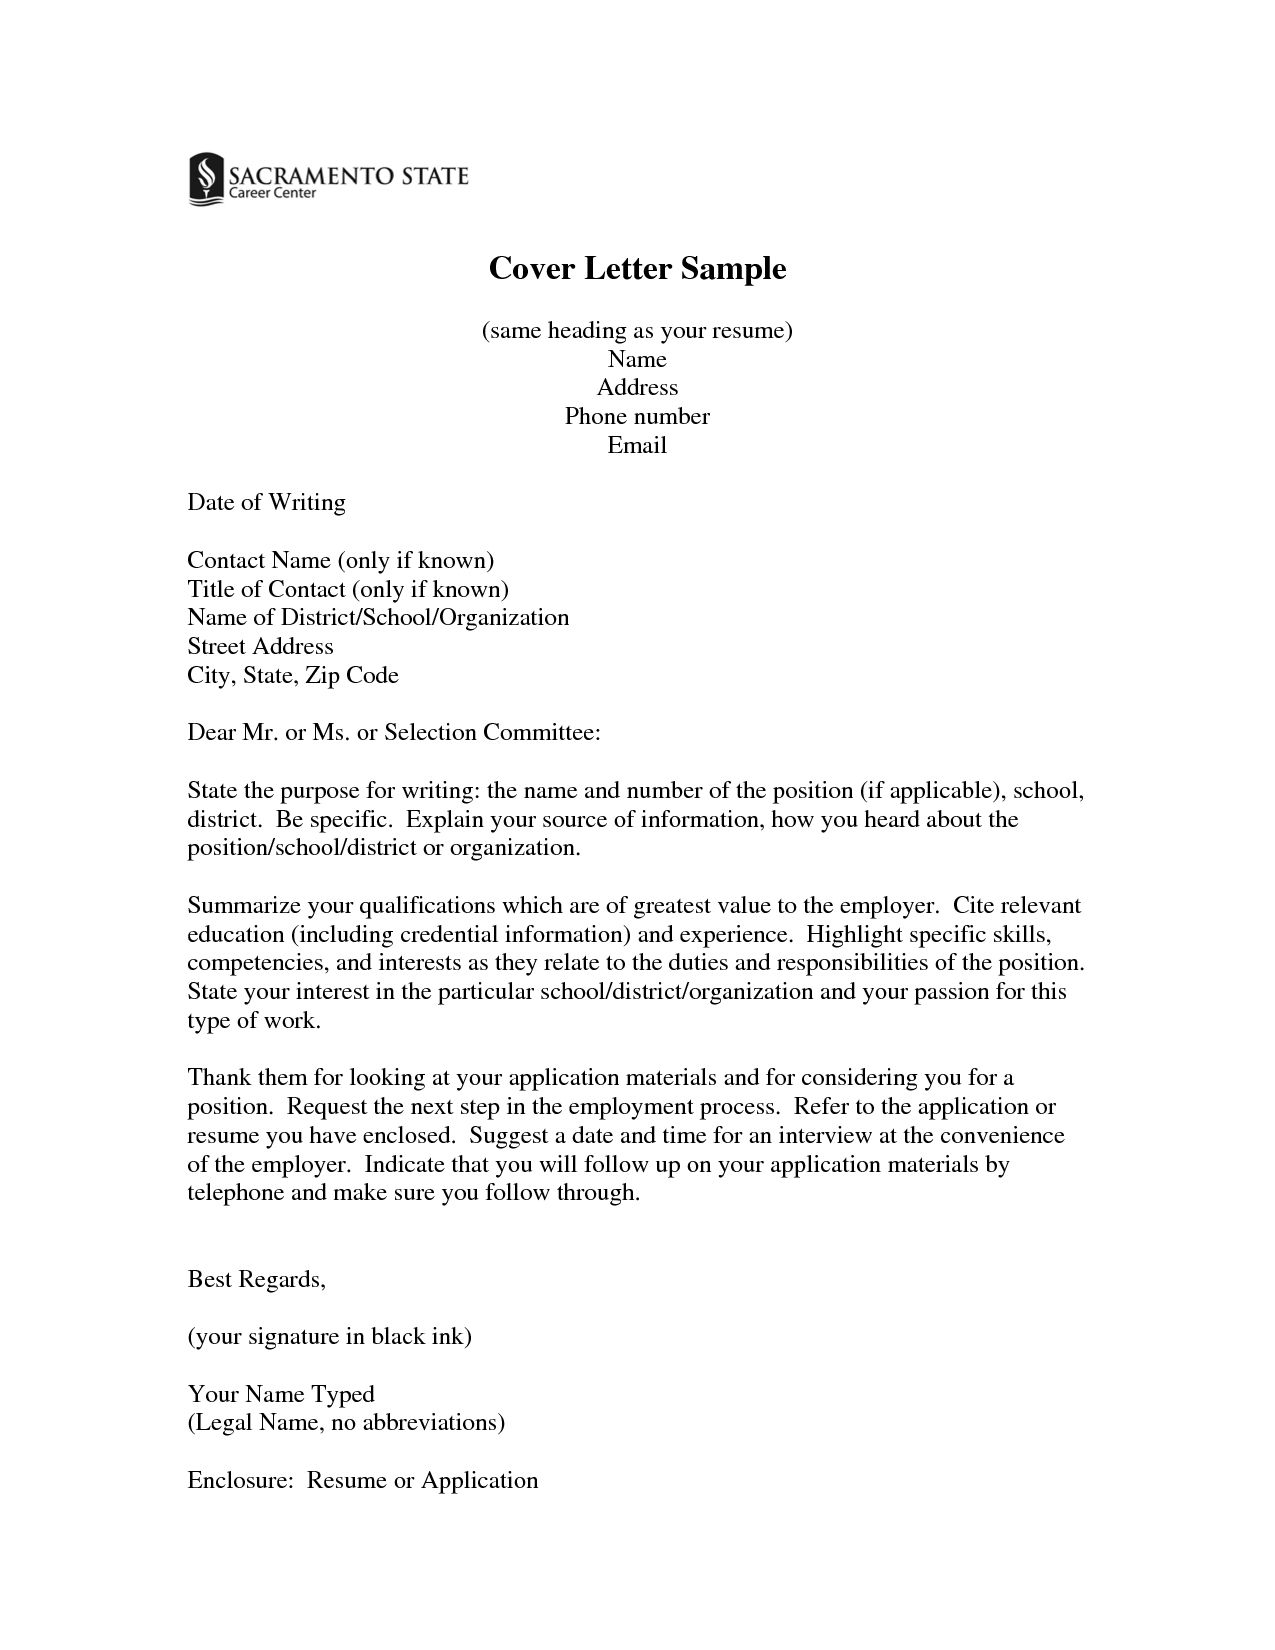 Cover Letter Template Header 1 Cover Letter Template Pinterest